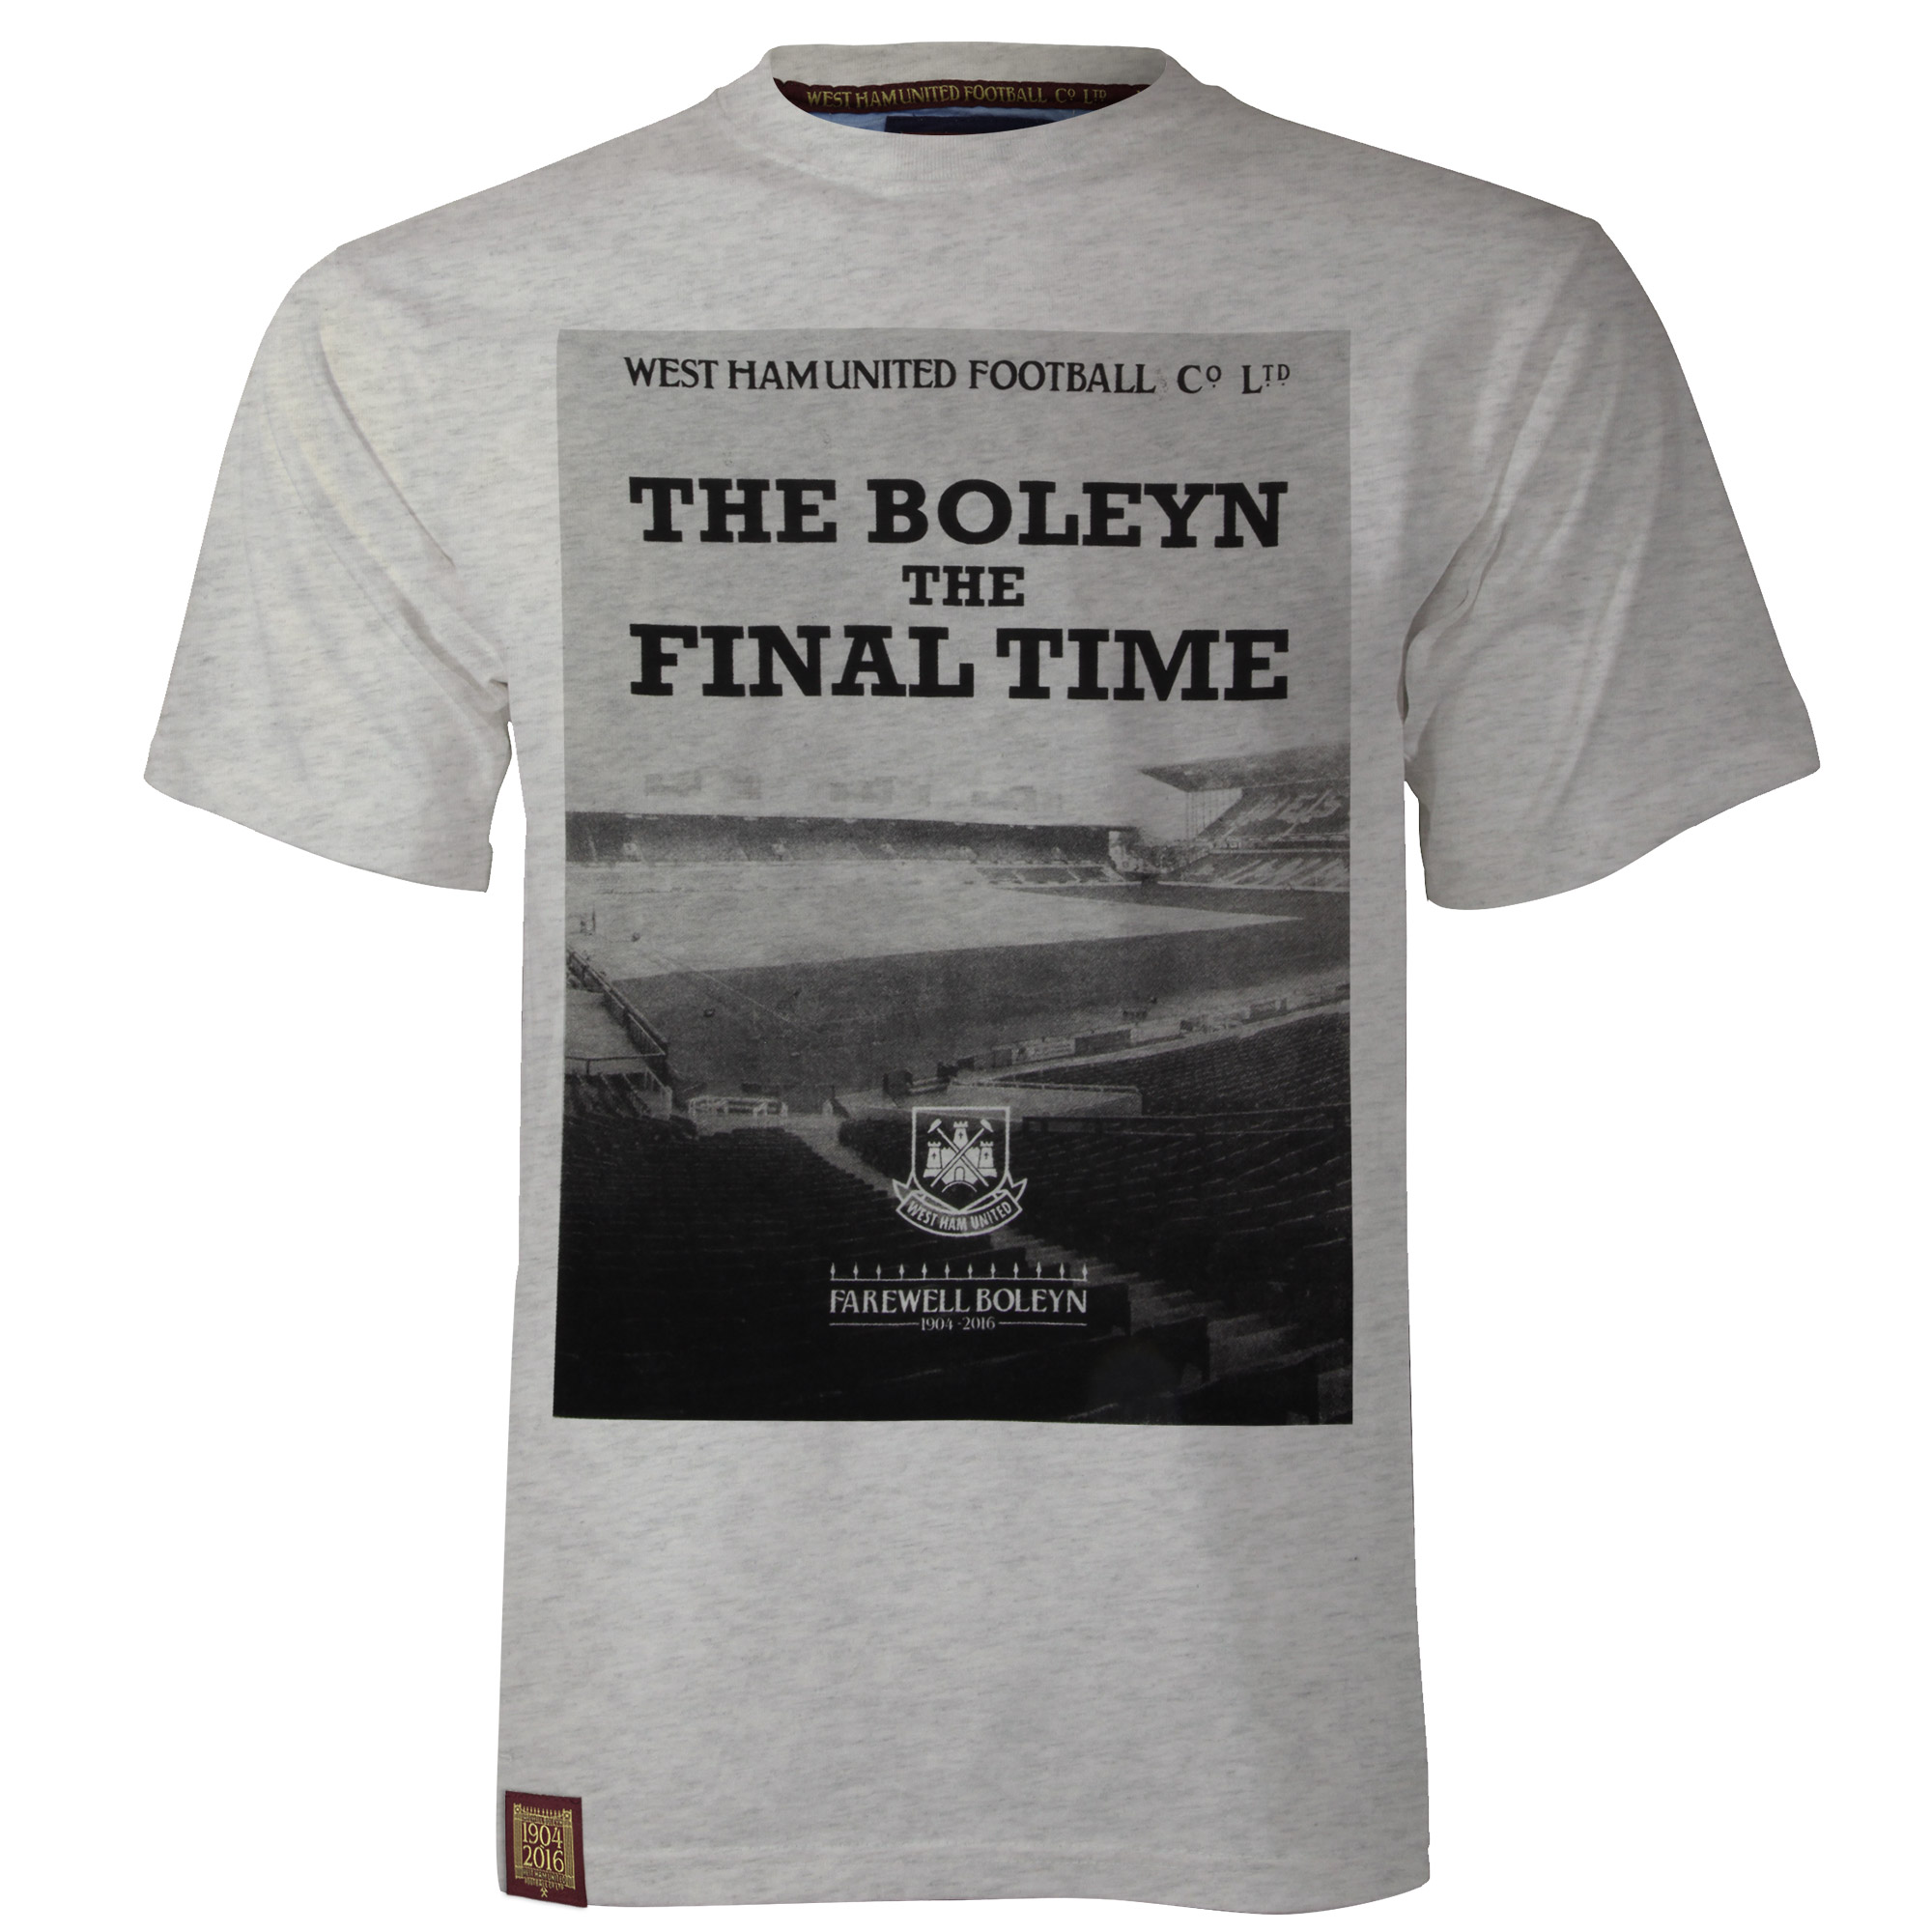 FAREWELL BOLEYN - ADULT GREY MARL T-SHIRT